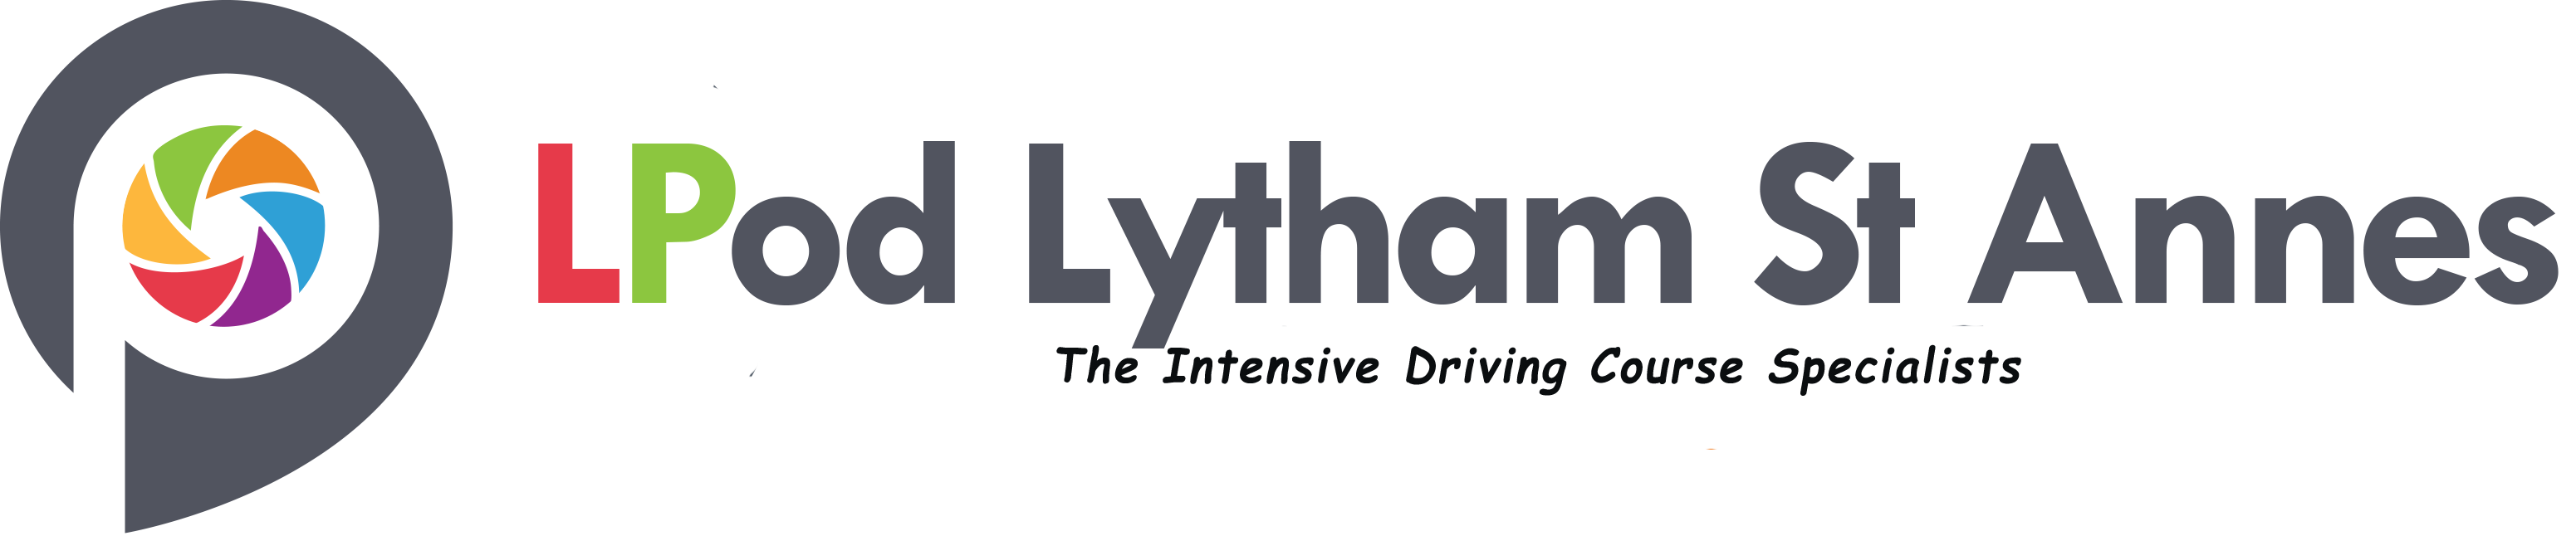 intensive driving courses Lytham St Annes